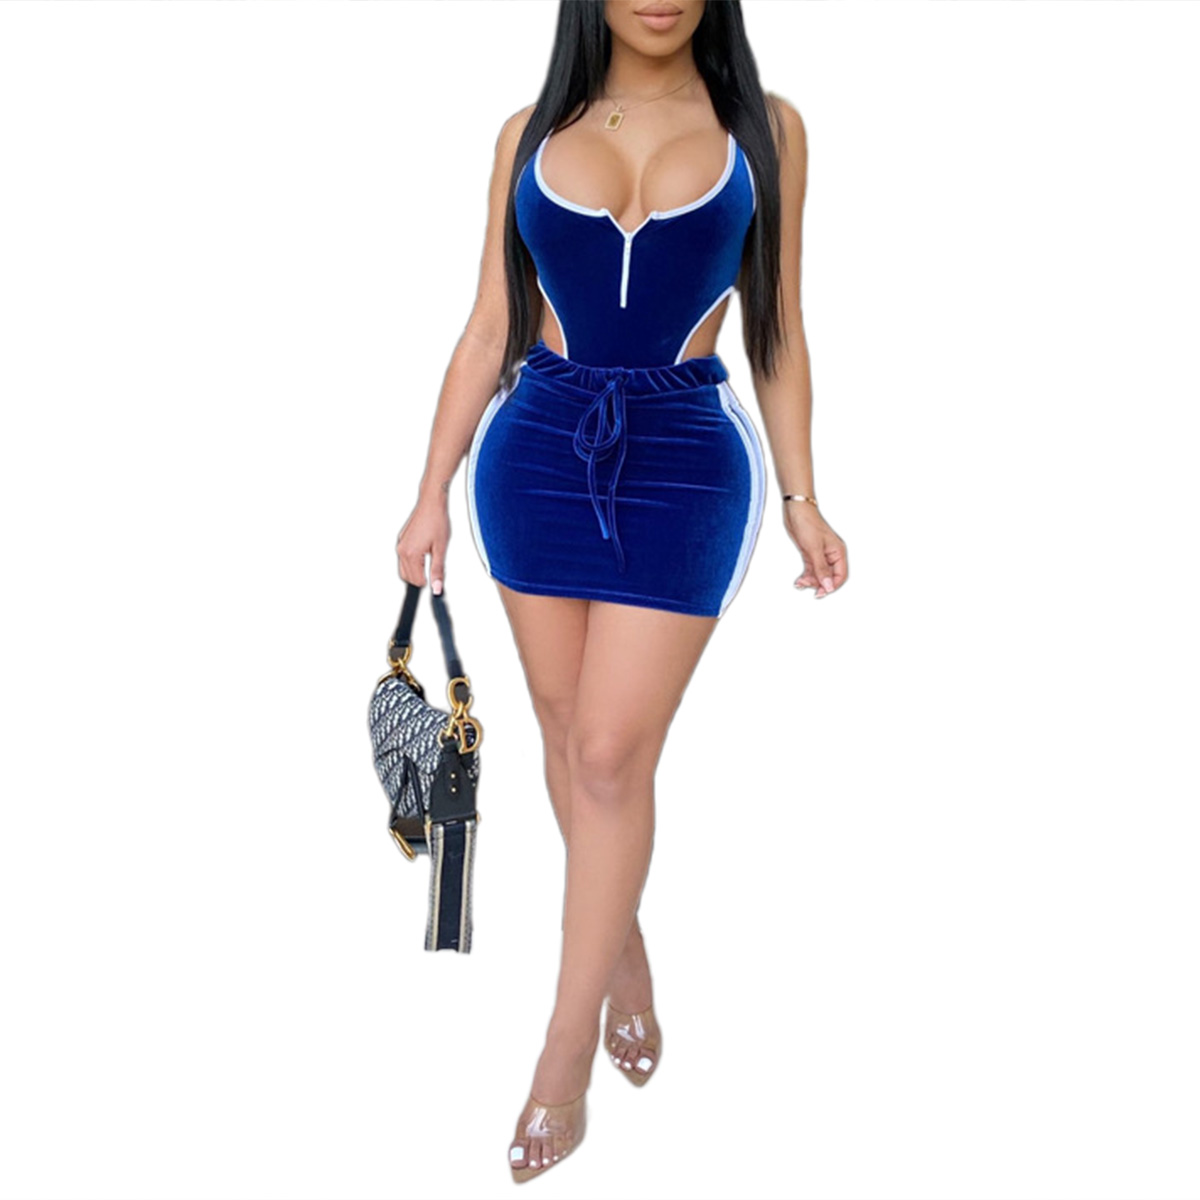 Women Sweatwear Tracksuit Set 2pcs Cold Waist Sleeveless Bodycon Bodysuit + Sexy Shorts 2020 Summer Trend Suit